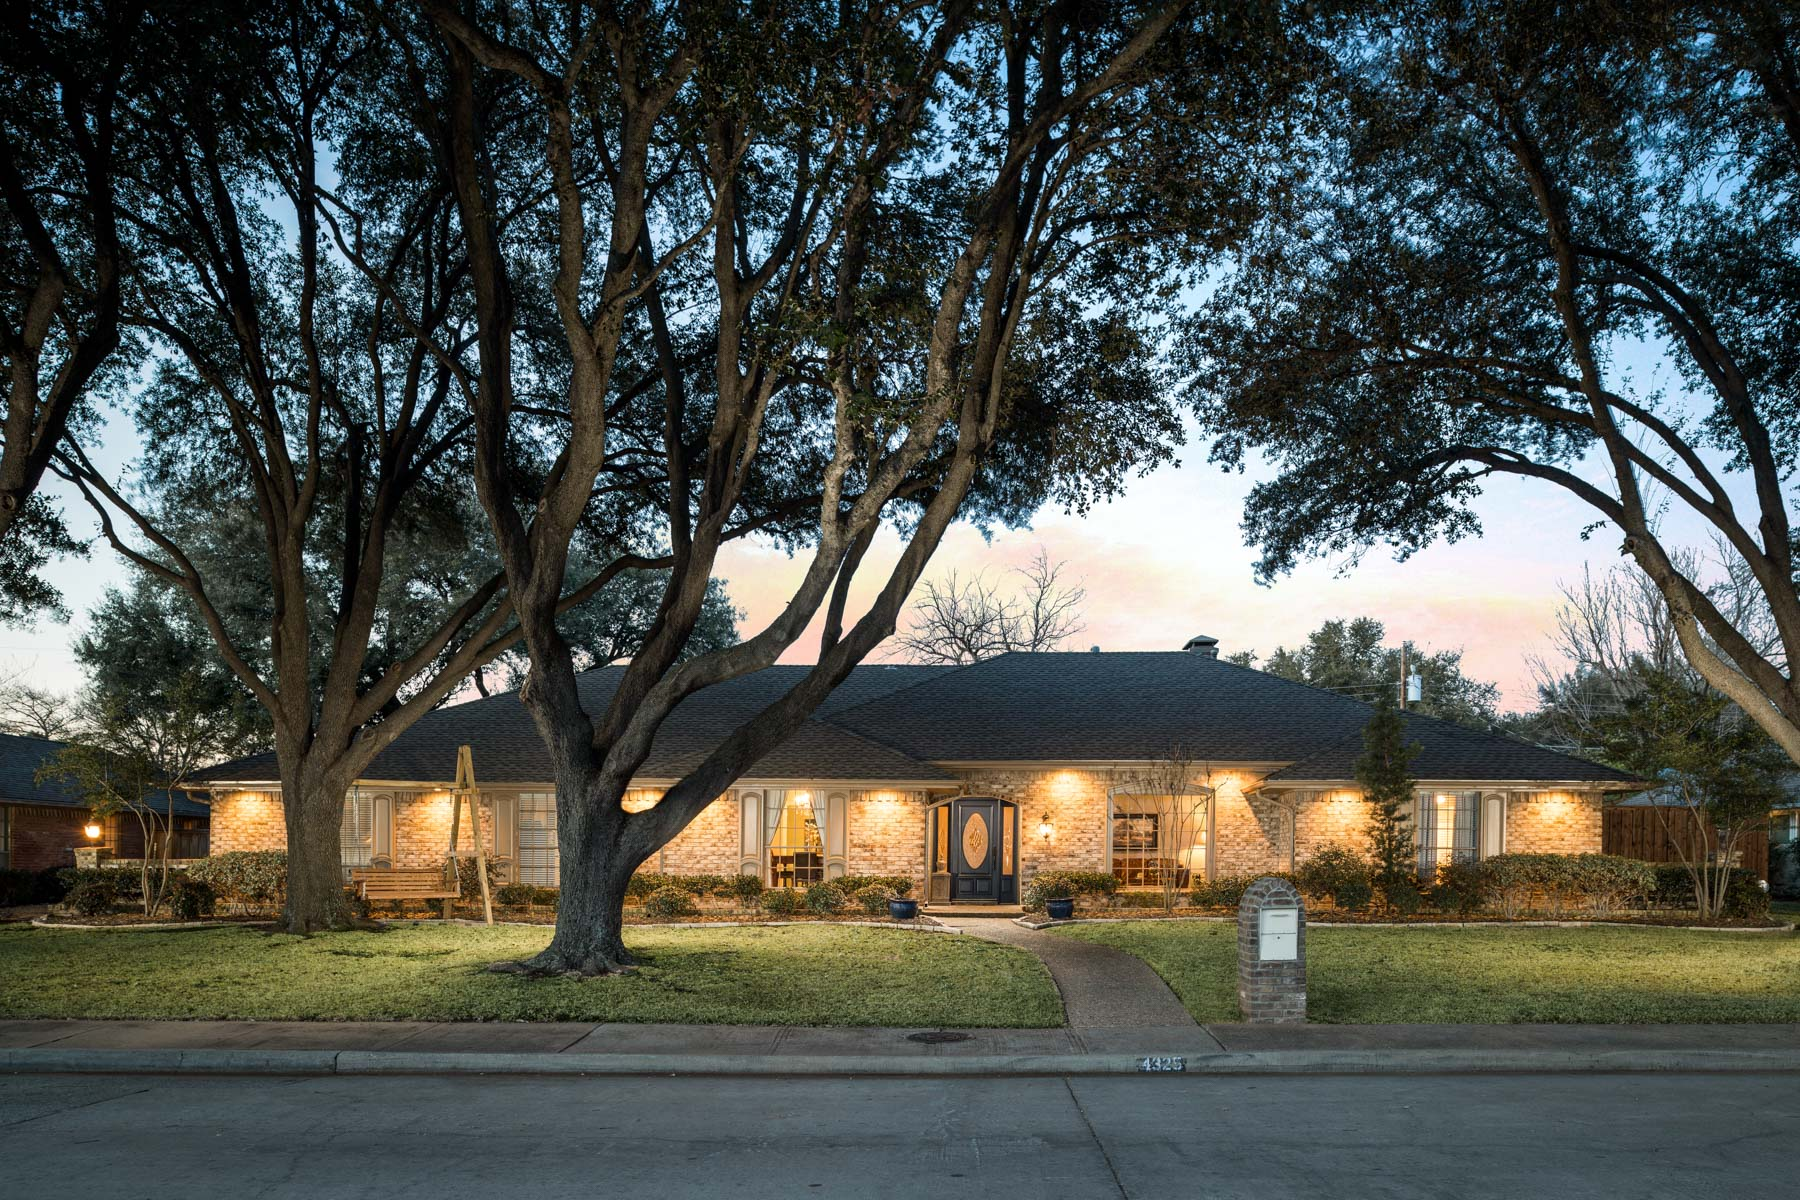 Single Family Home for Sale at Picturesque Traditional Updated Ranch 4325 Willow Lane, Dallas, Texas, 75244 United States